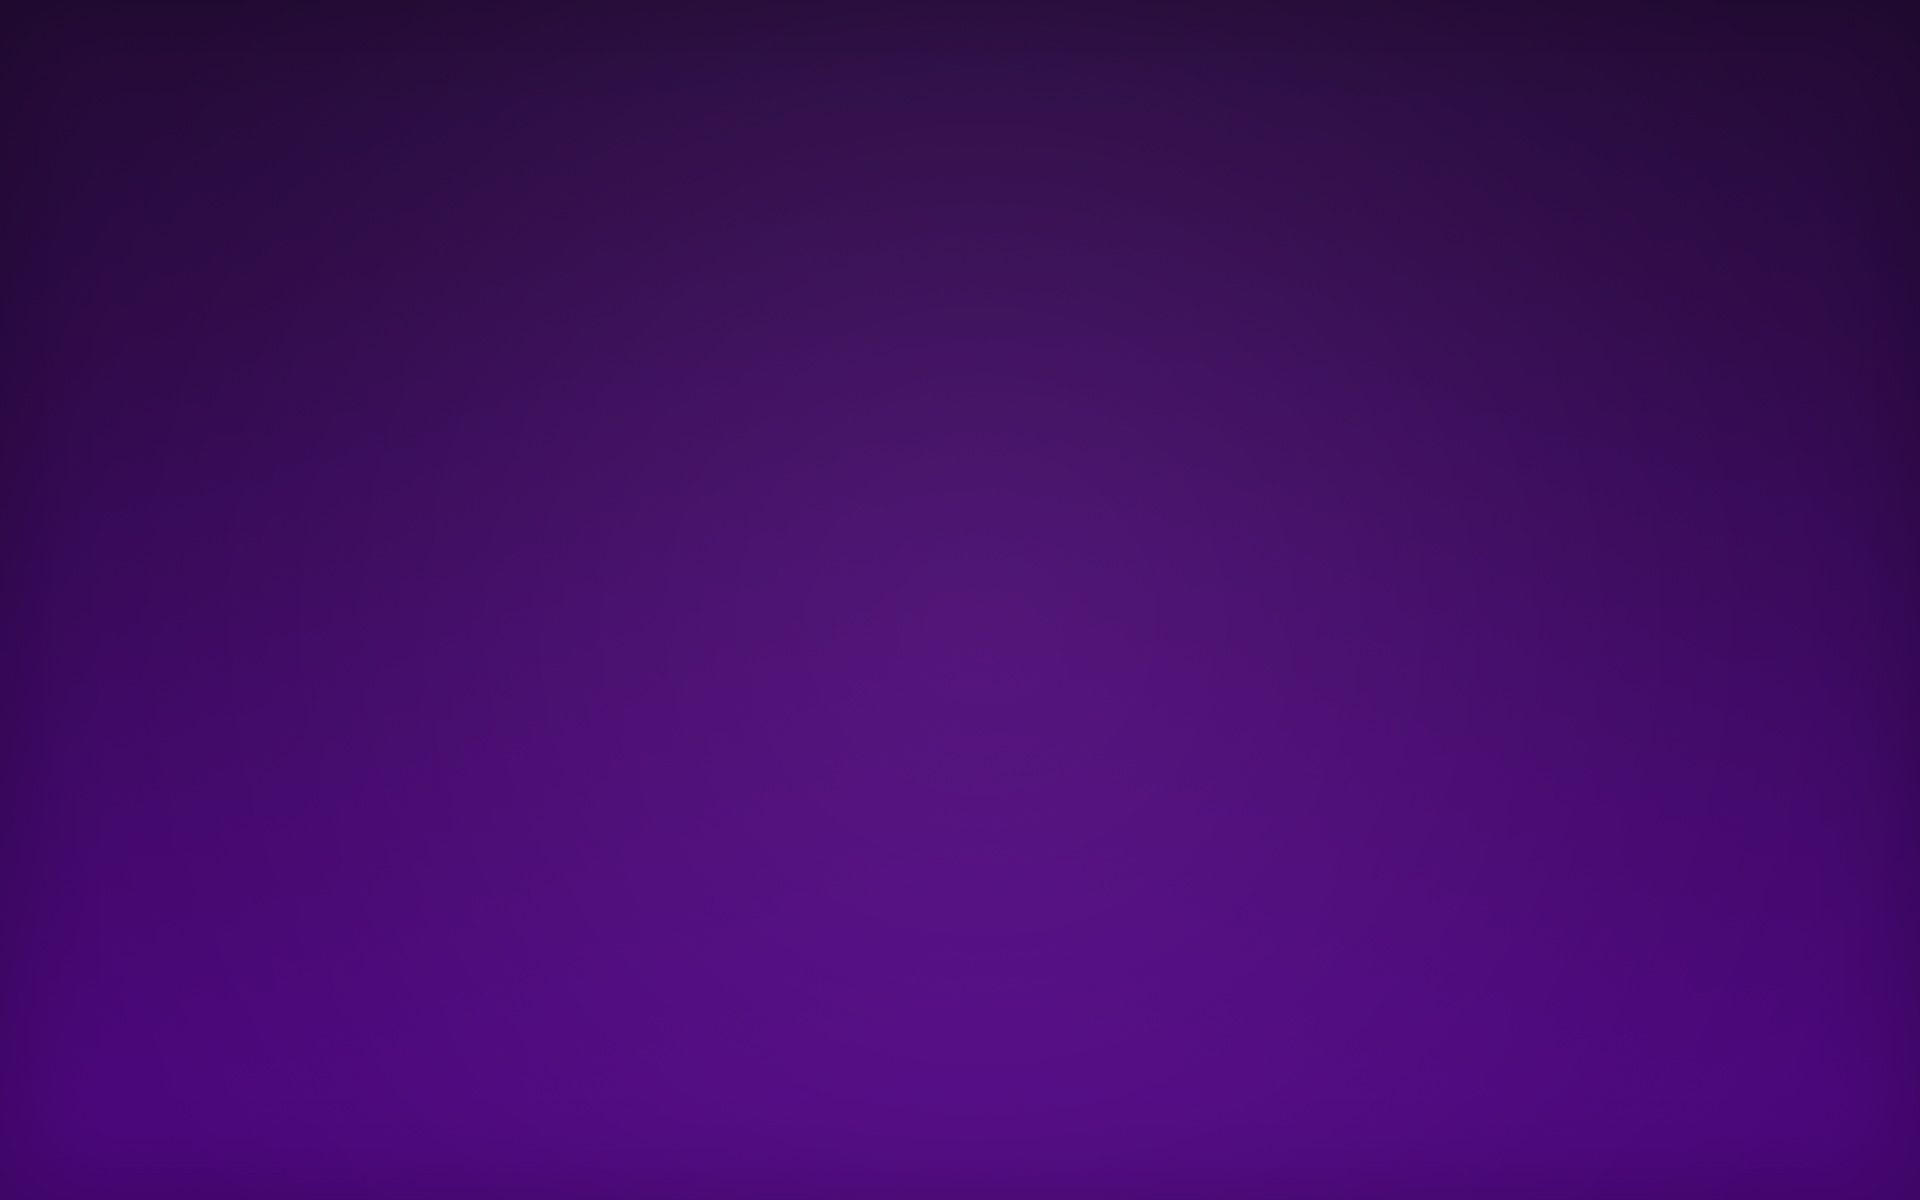 1920x1200 Wallpapers For > Plain Dark Purple Backgrounds #9555